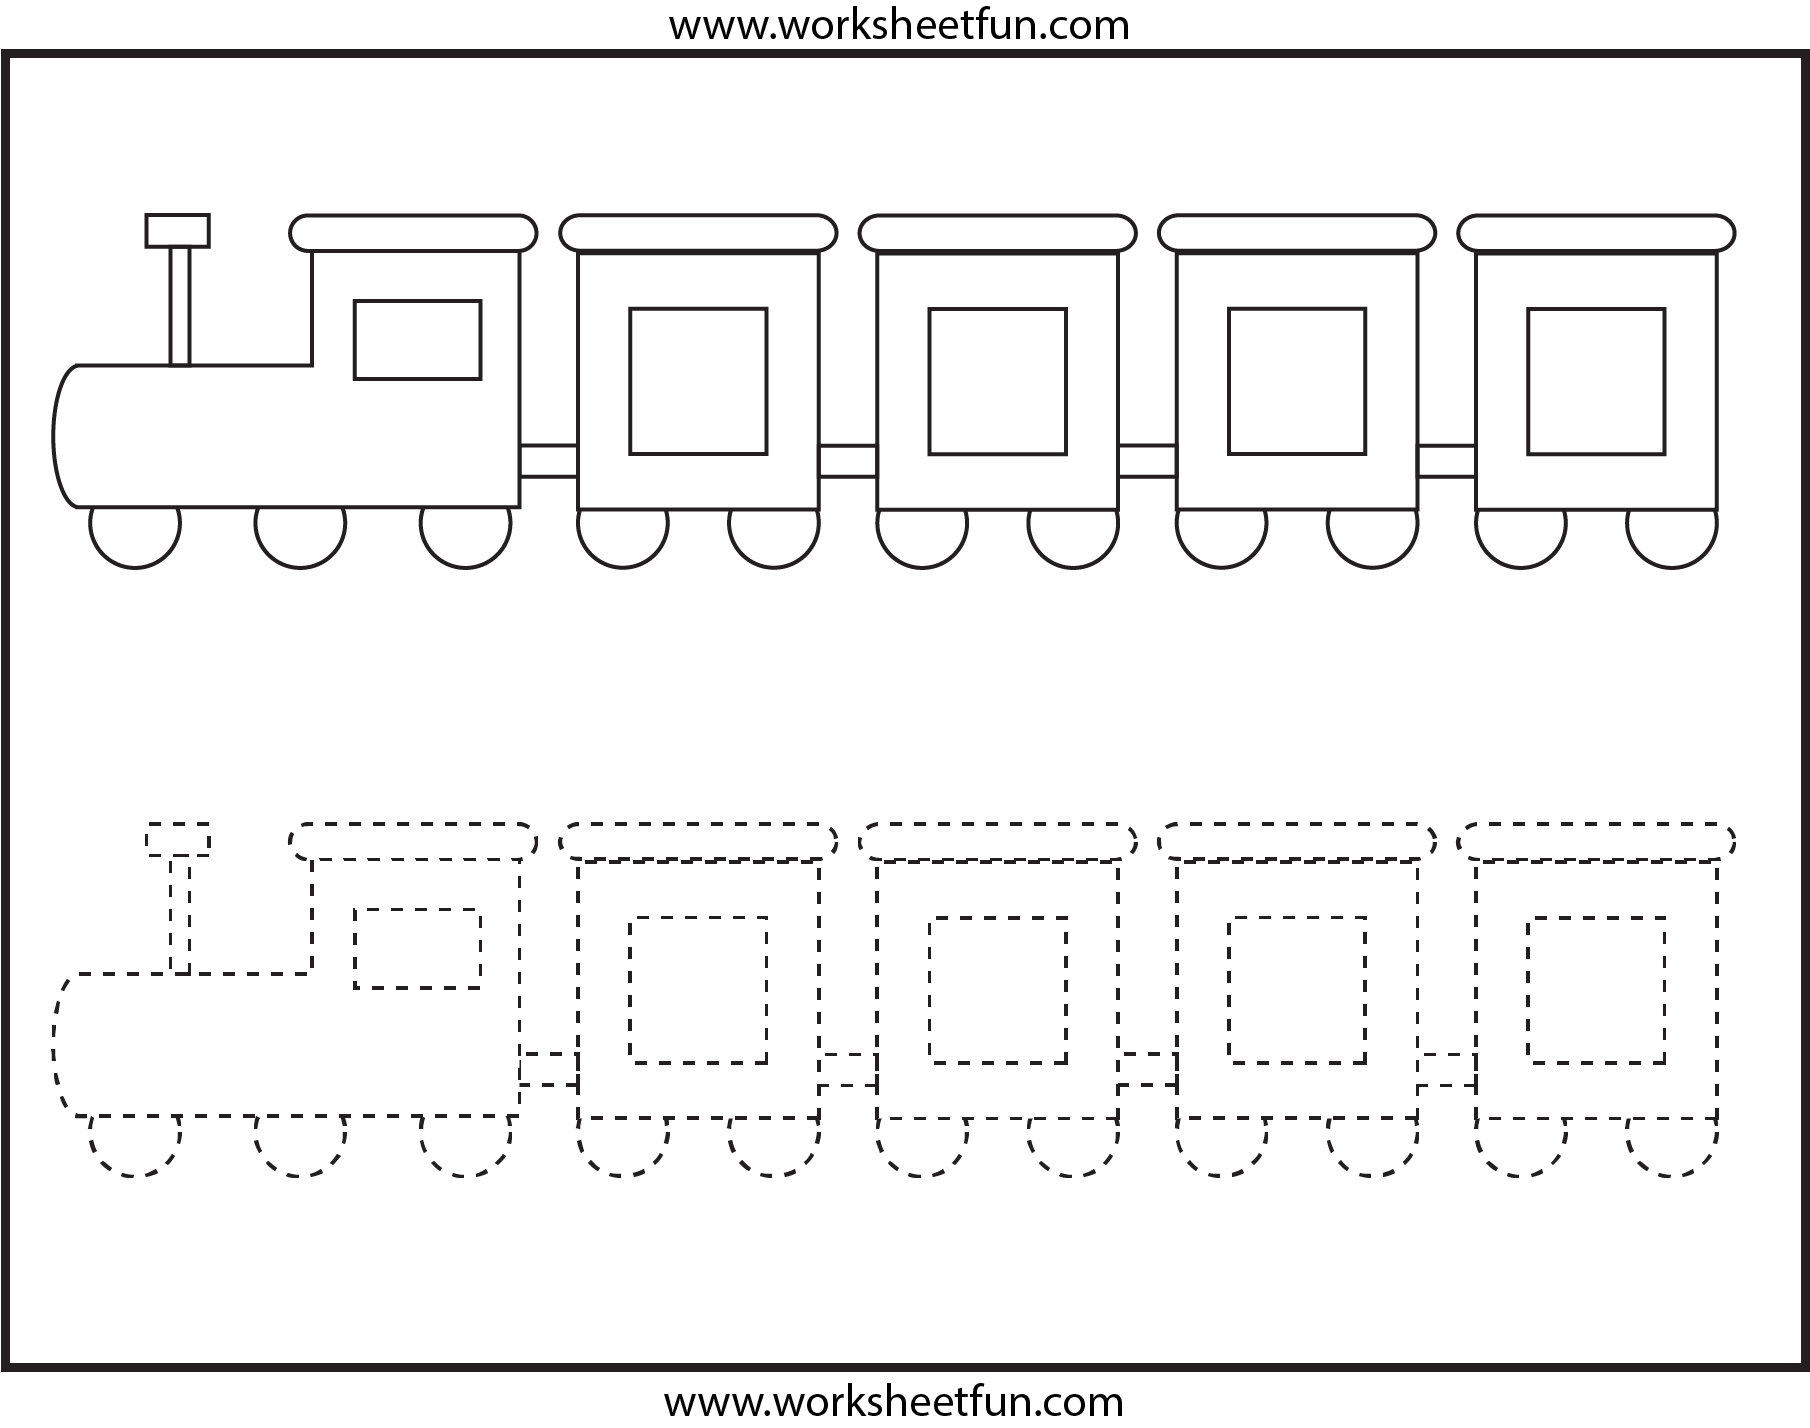 Picture Tracing Train 1 Worksheet Free Printable Worksheets Worksheetfun